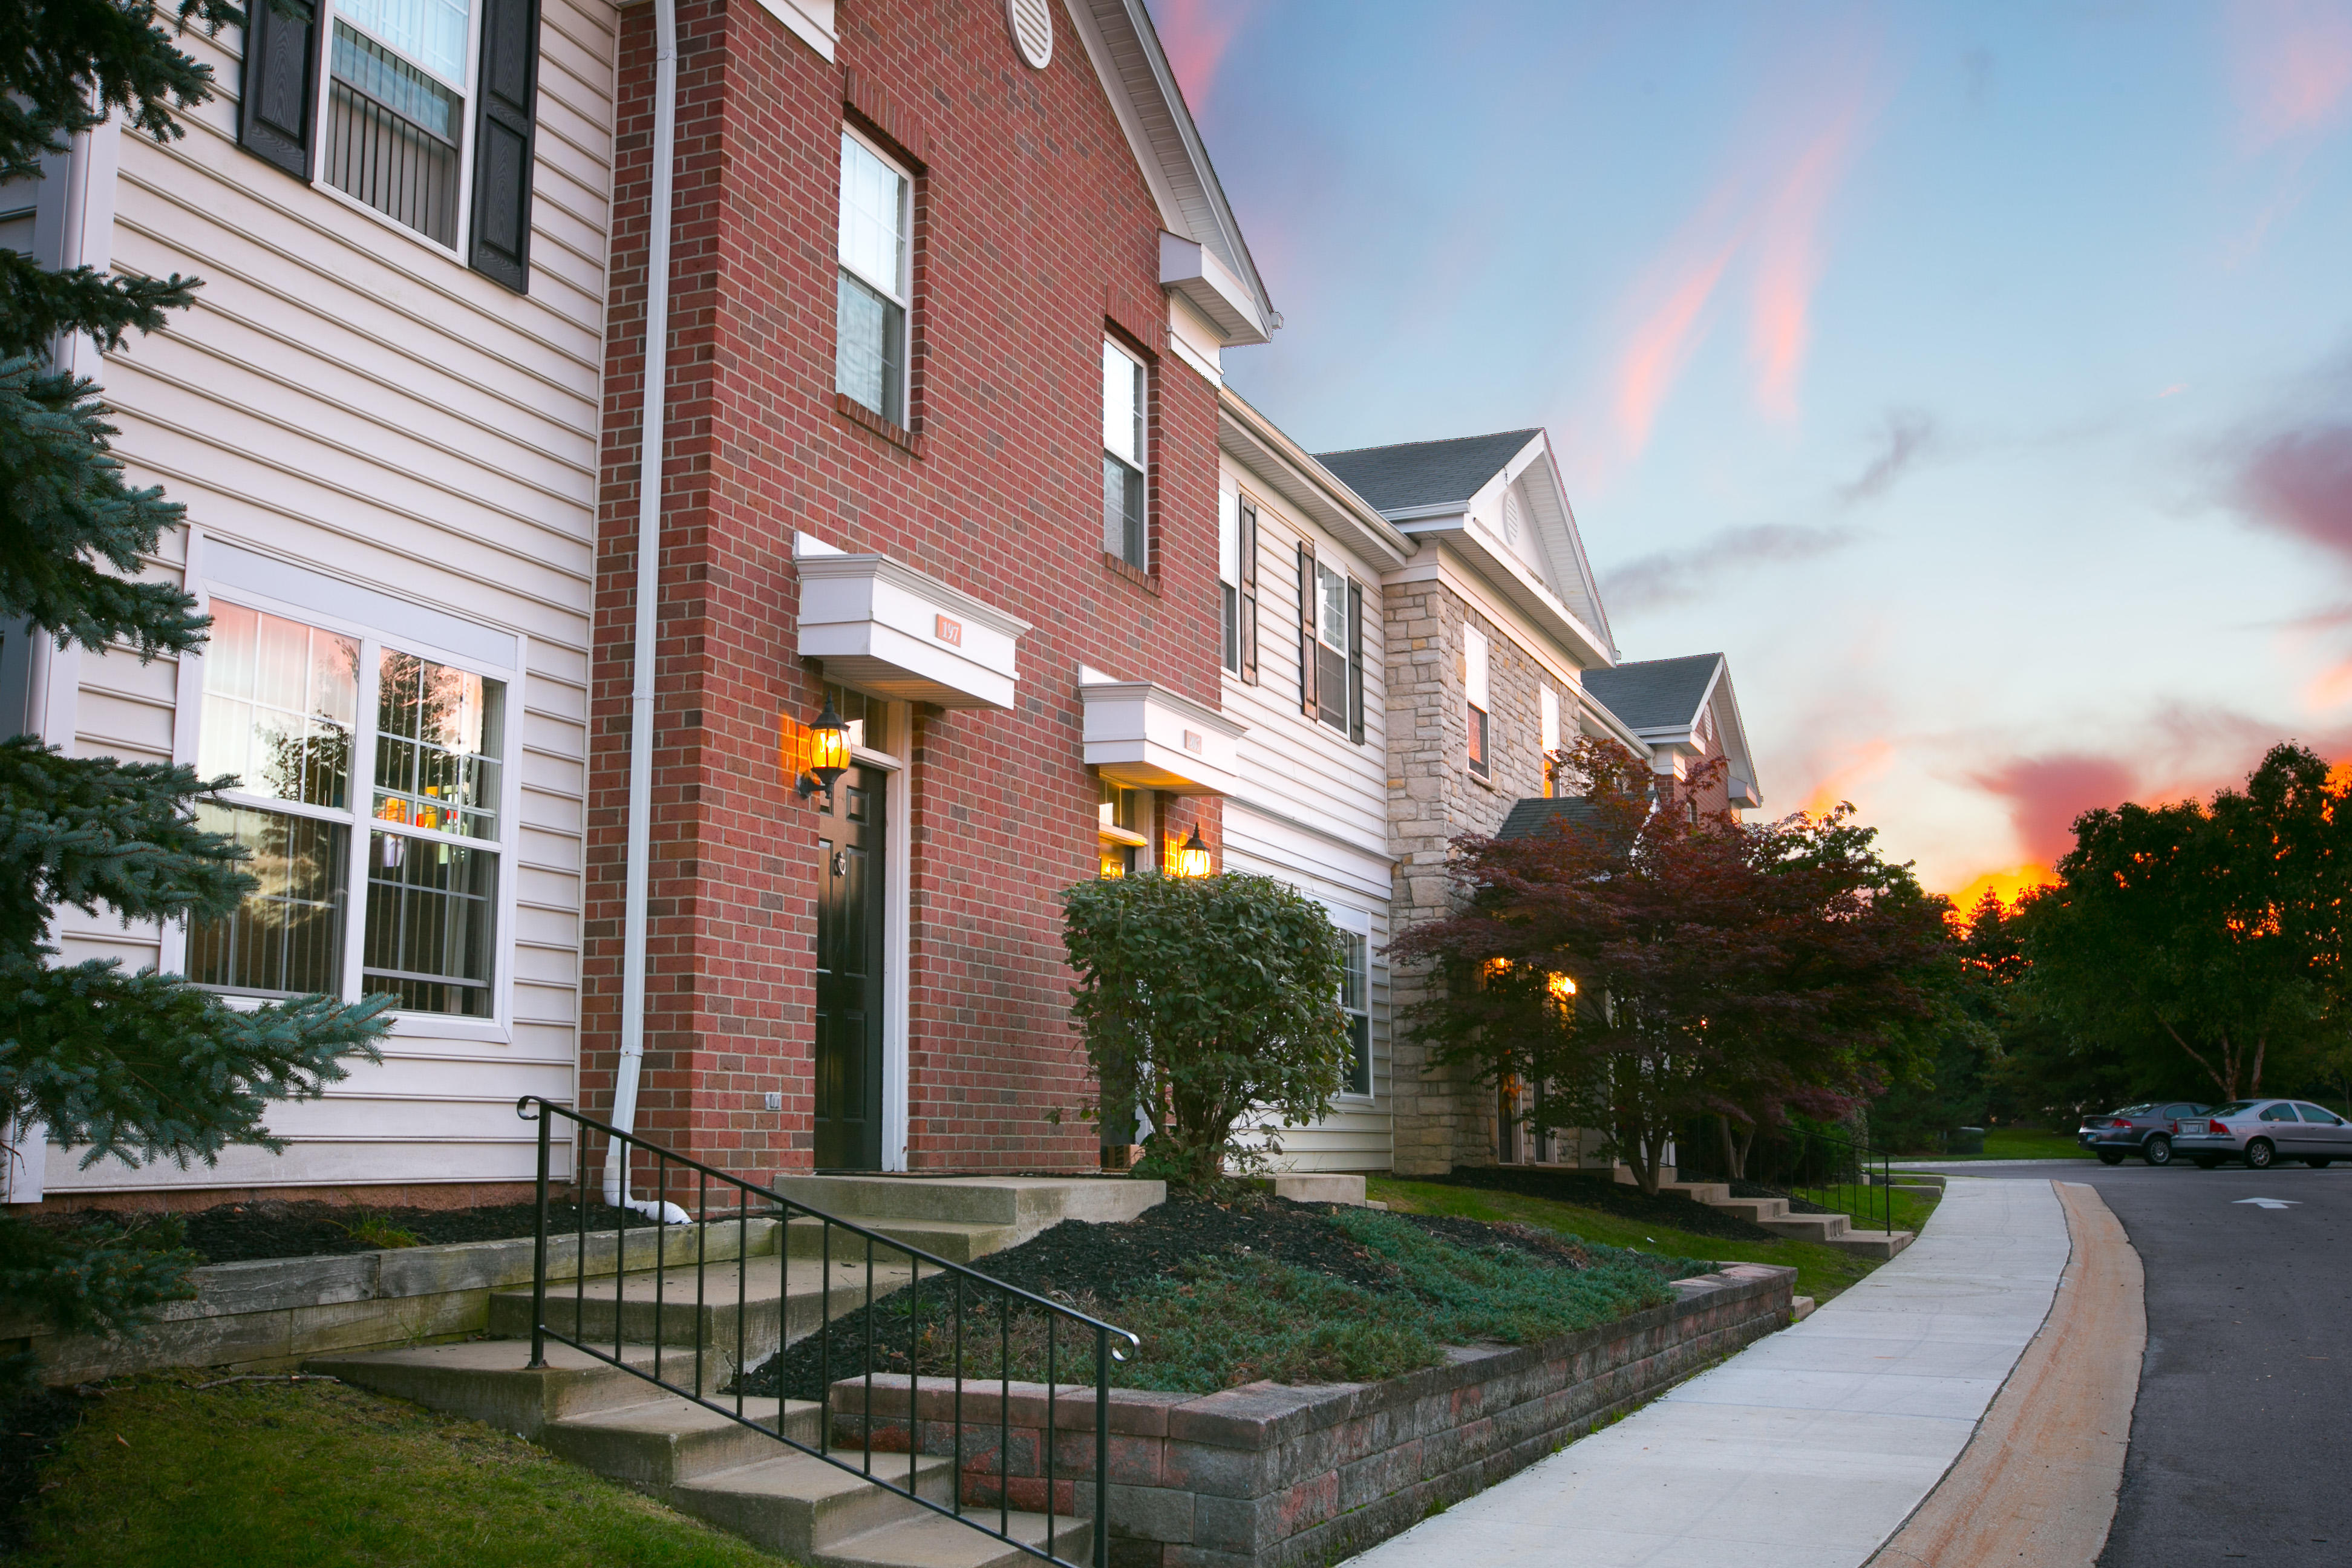 The Residence at Barrington Apartments image 1